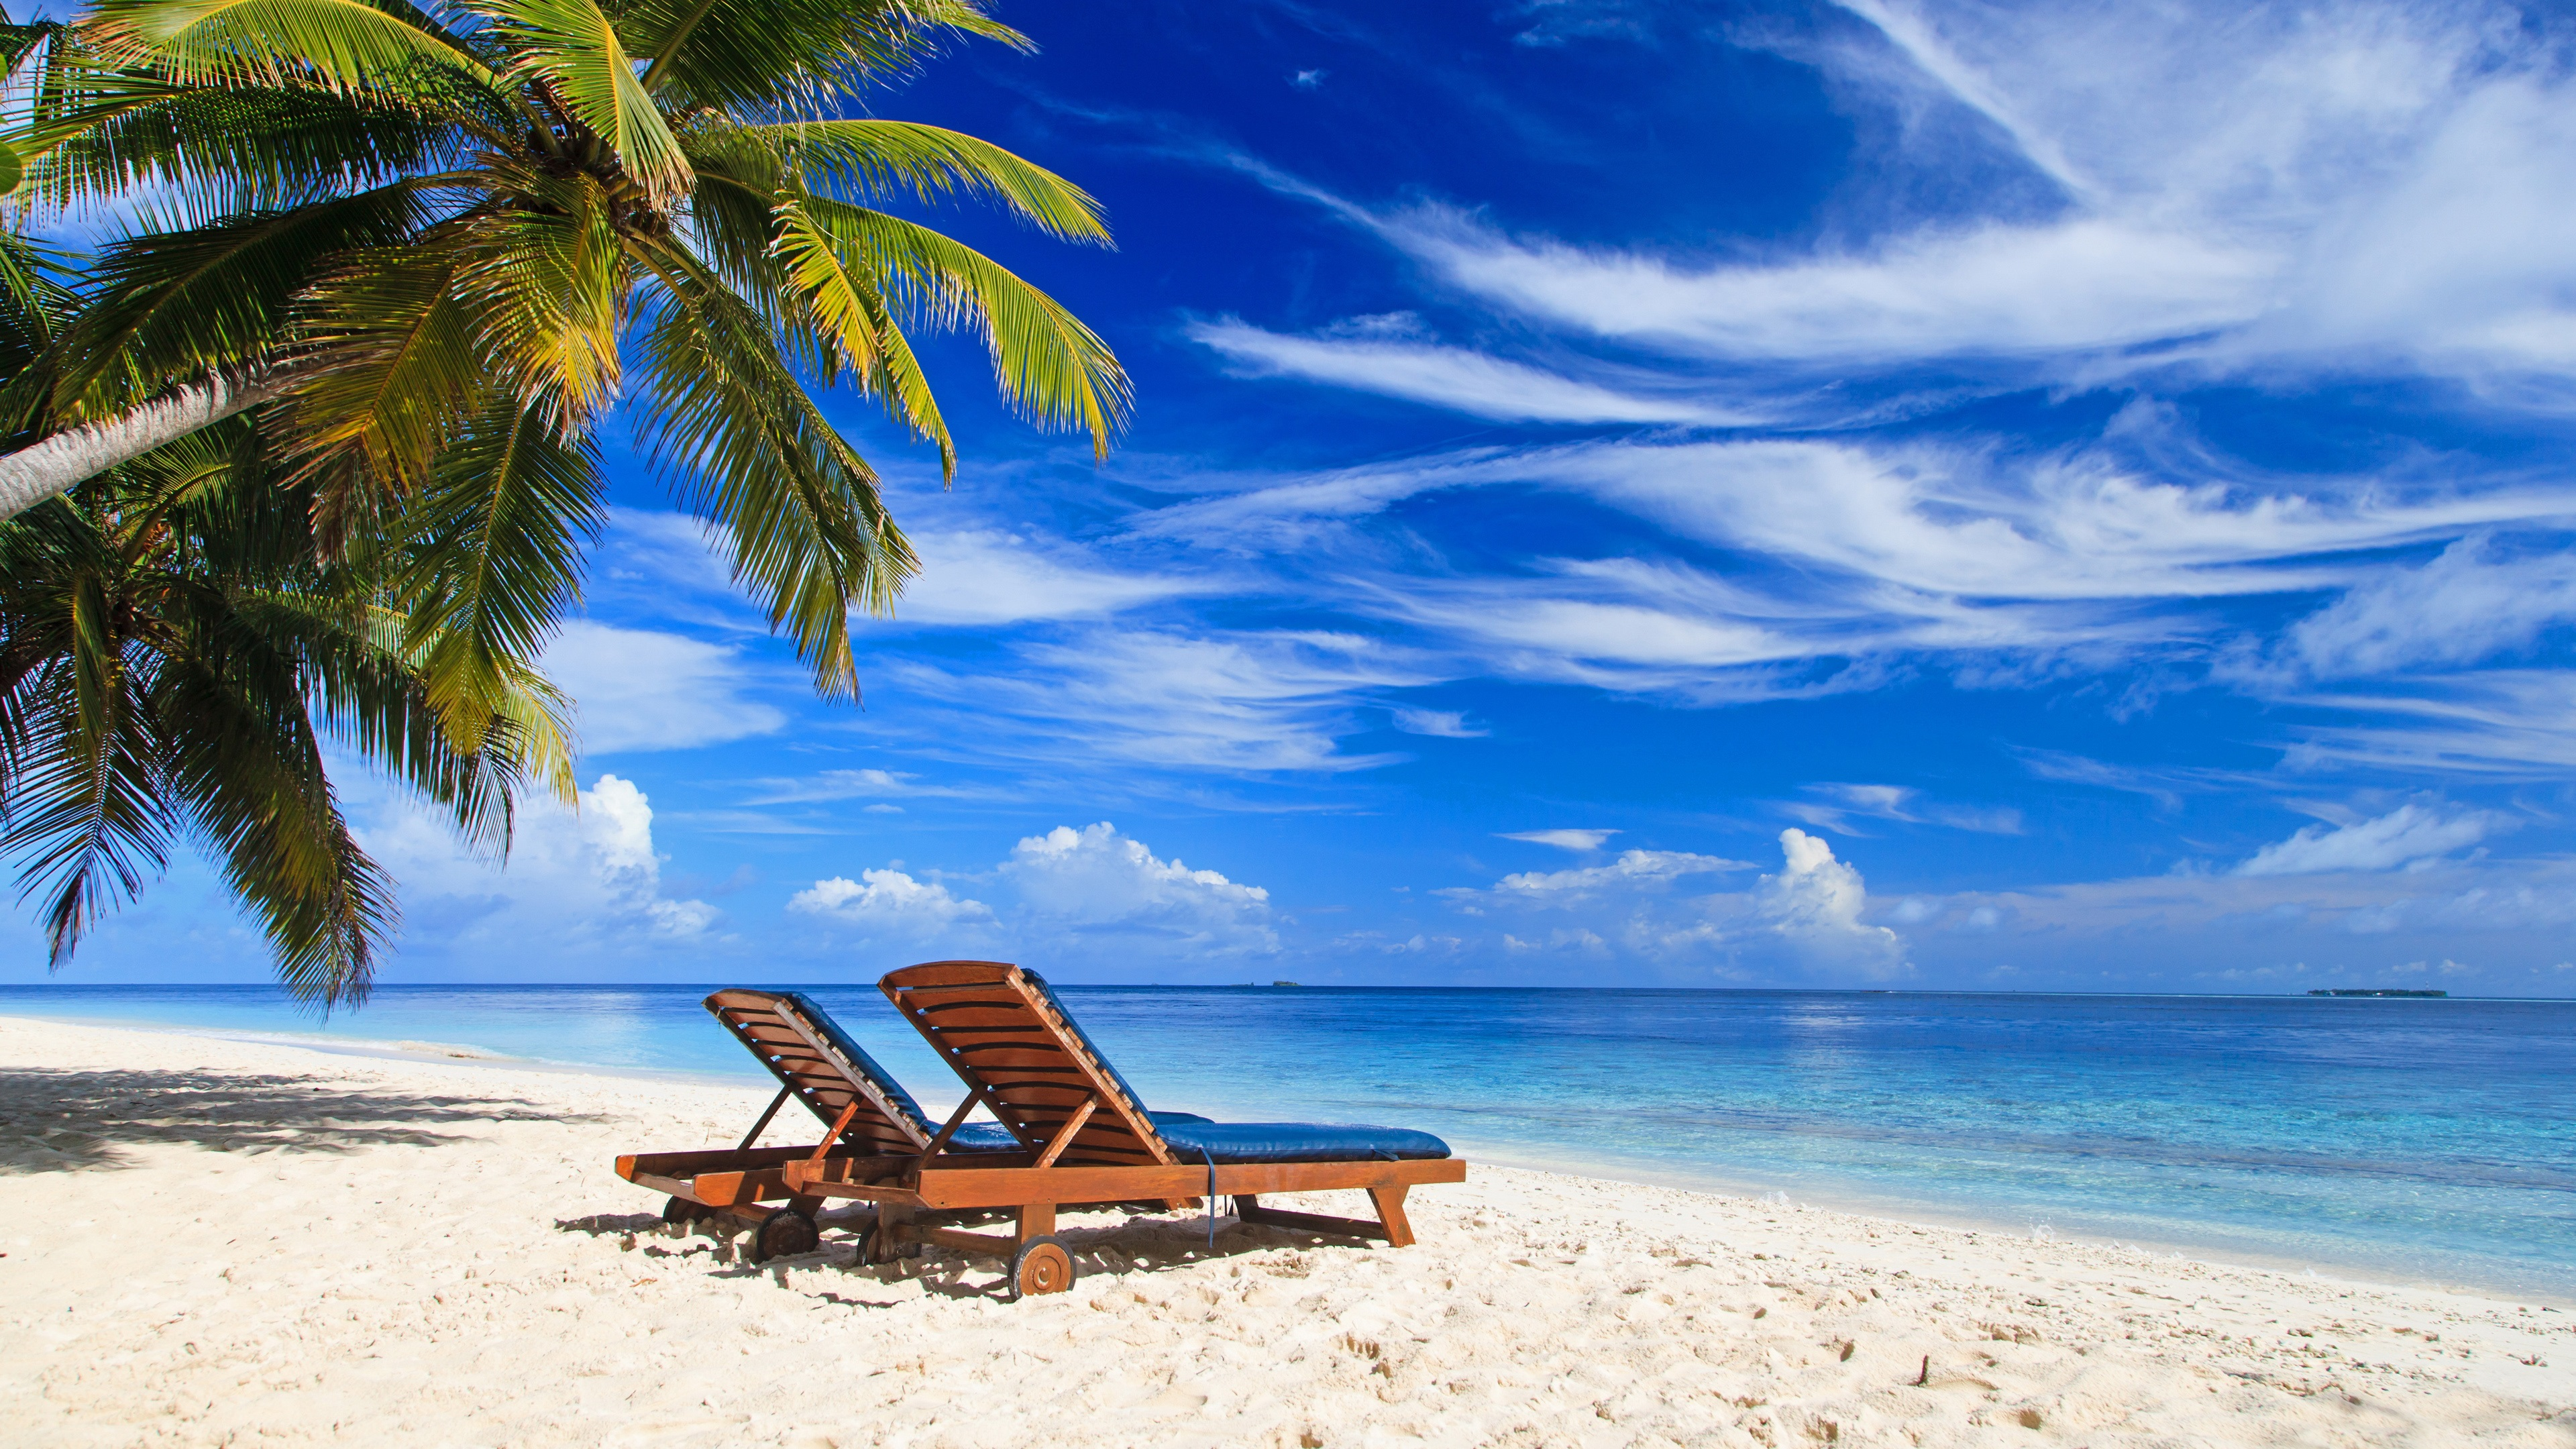 4K Beach Chairs Wallpapers High Quality | Download Free